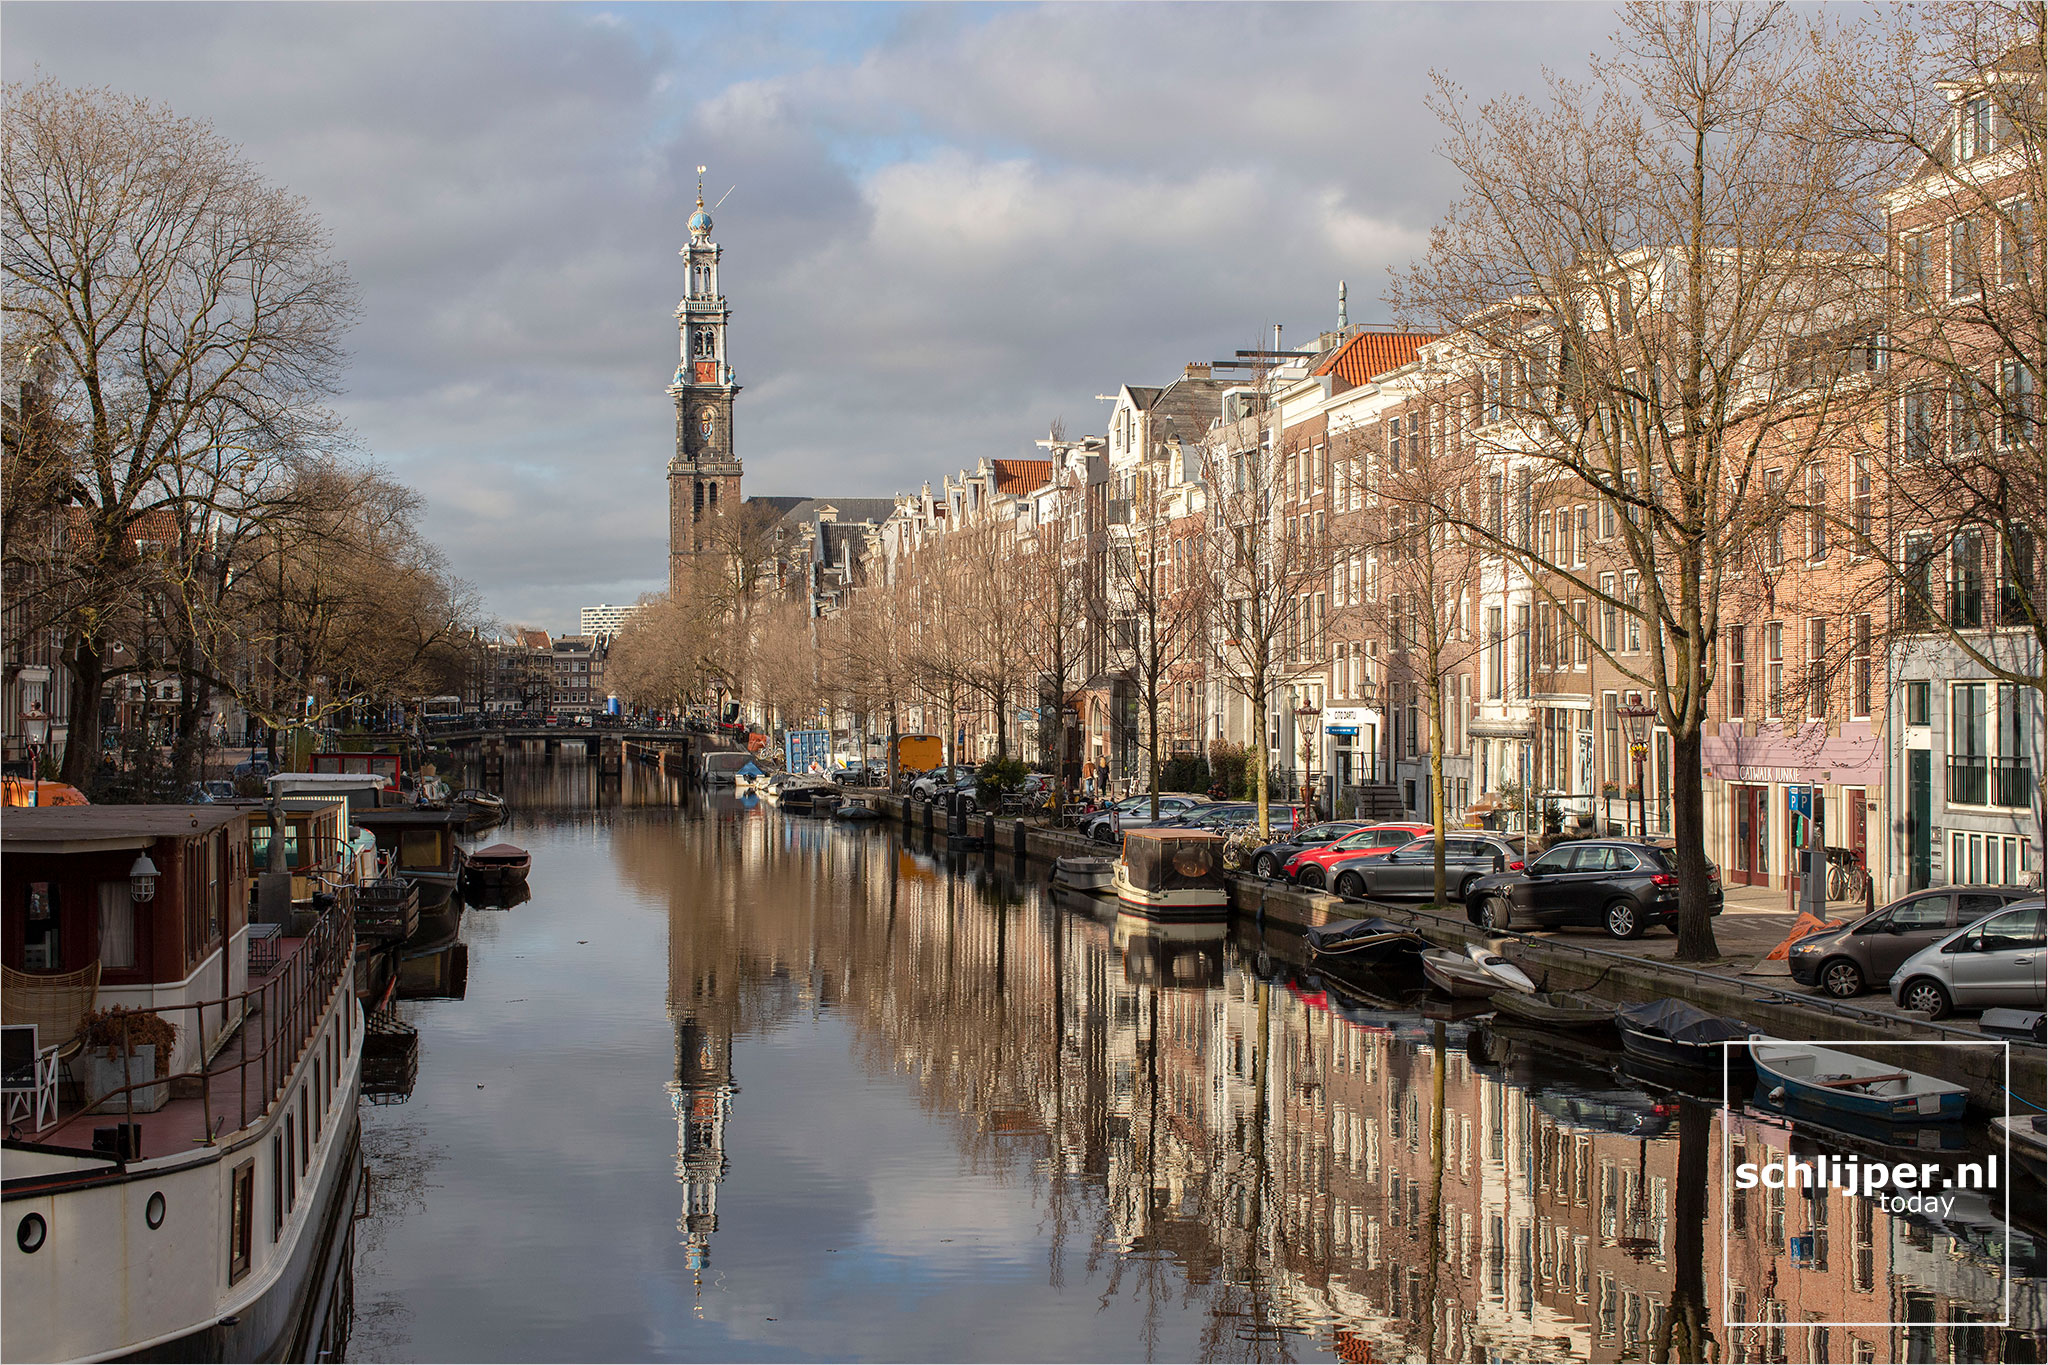 The Netherlands, Amsterdam, 22 maart 2021